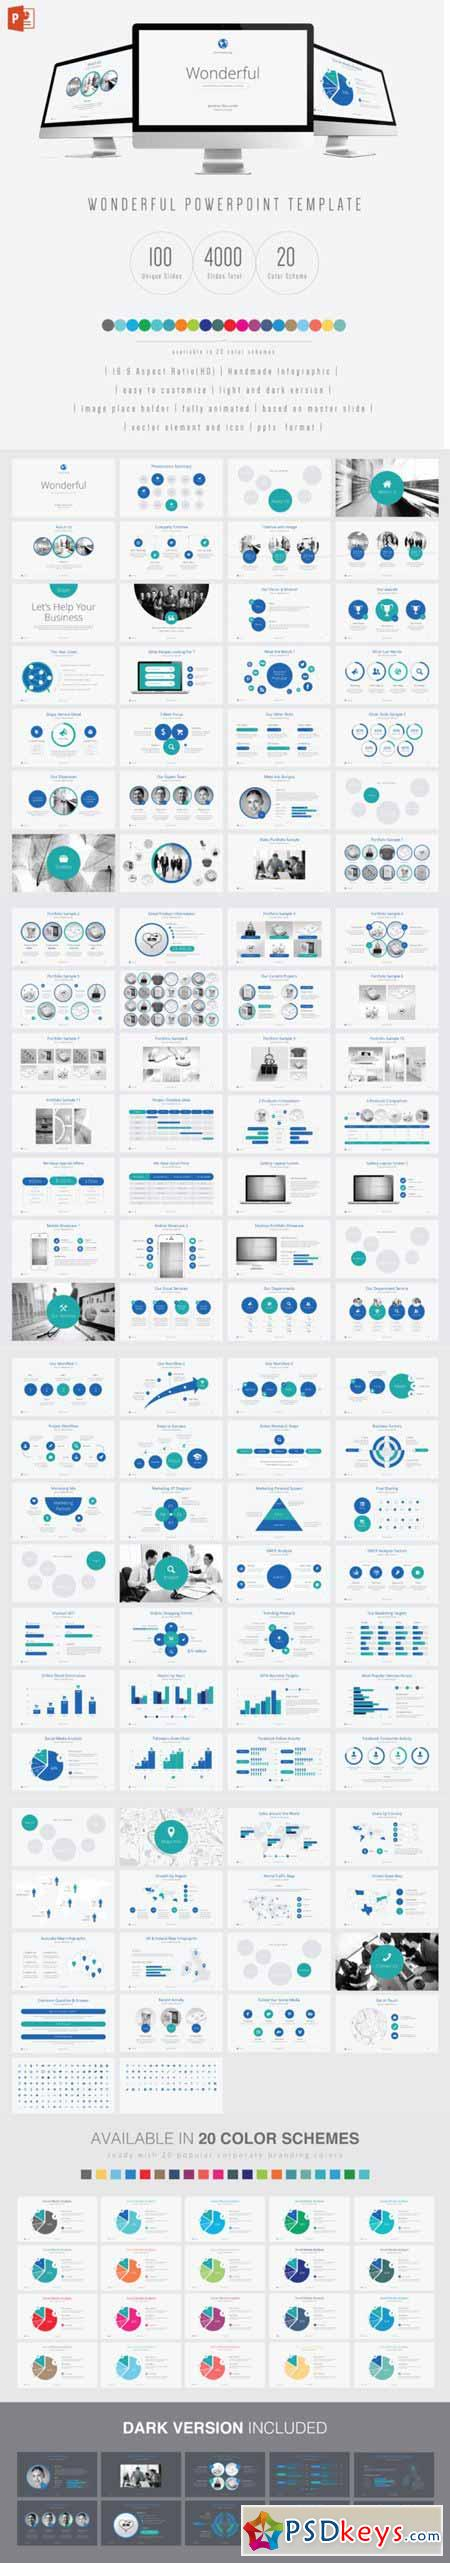 Wonderful PowerPoint Template 446458